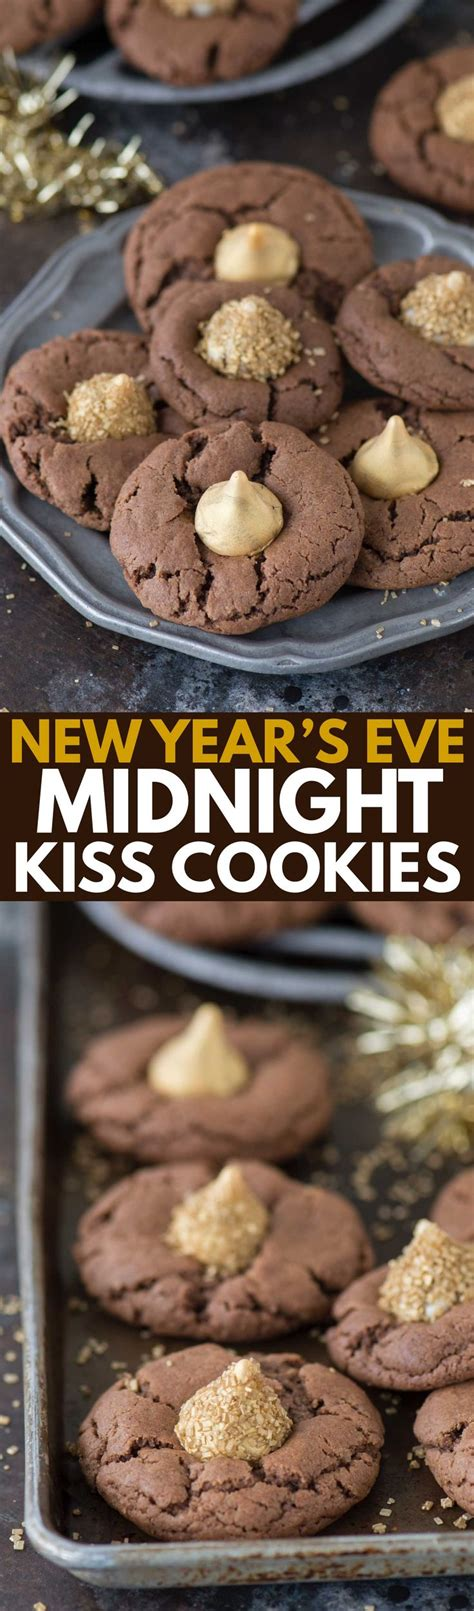 new year chocolate cookies recipe 1170 best images about cookies on